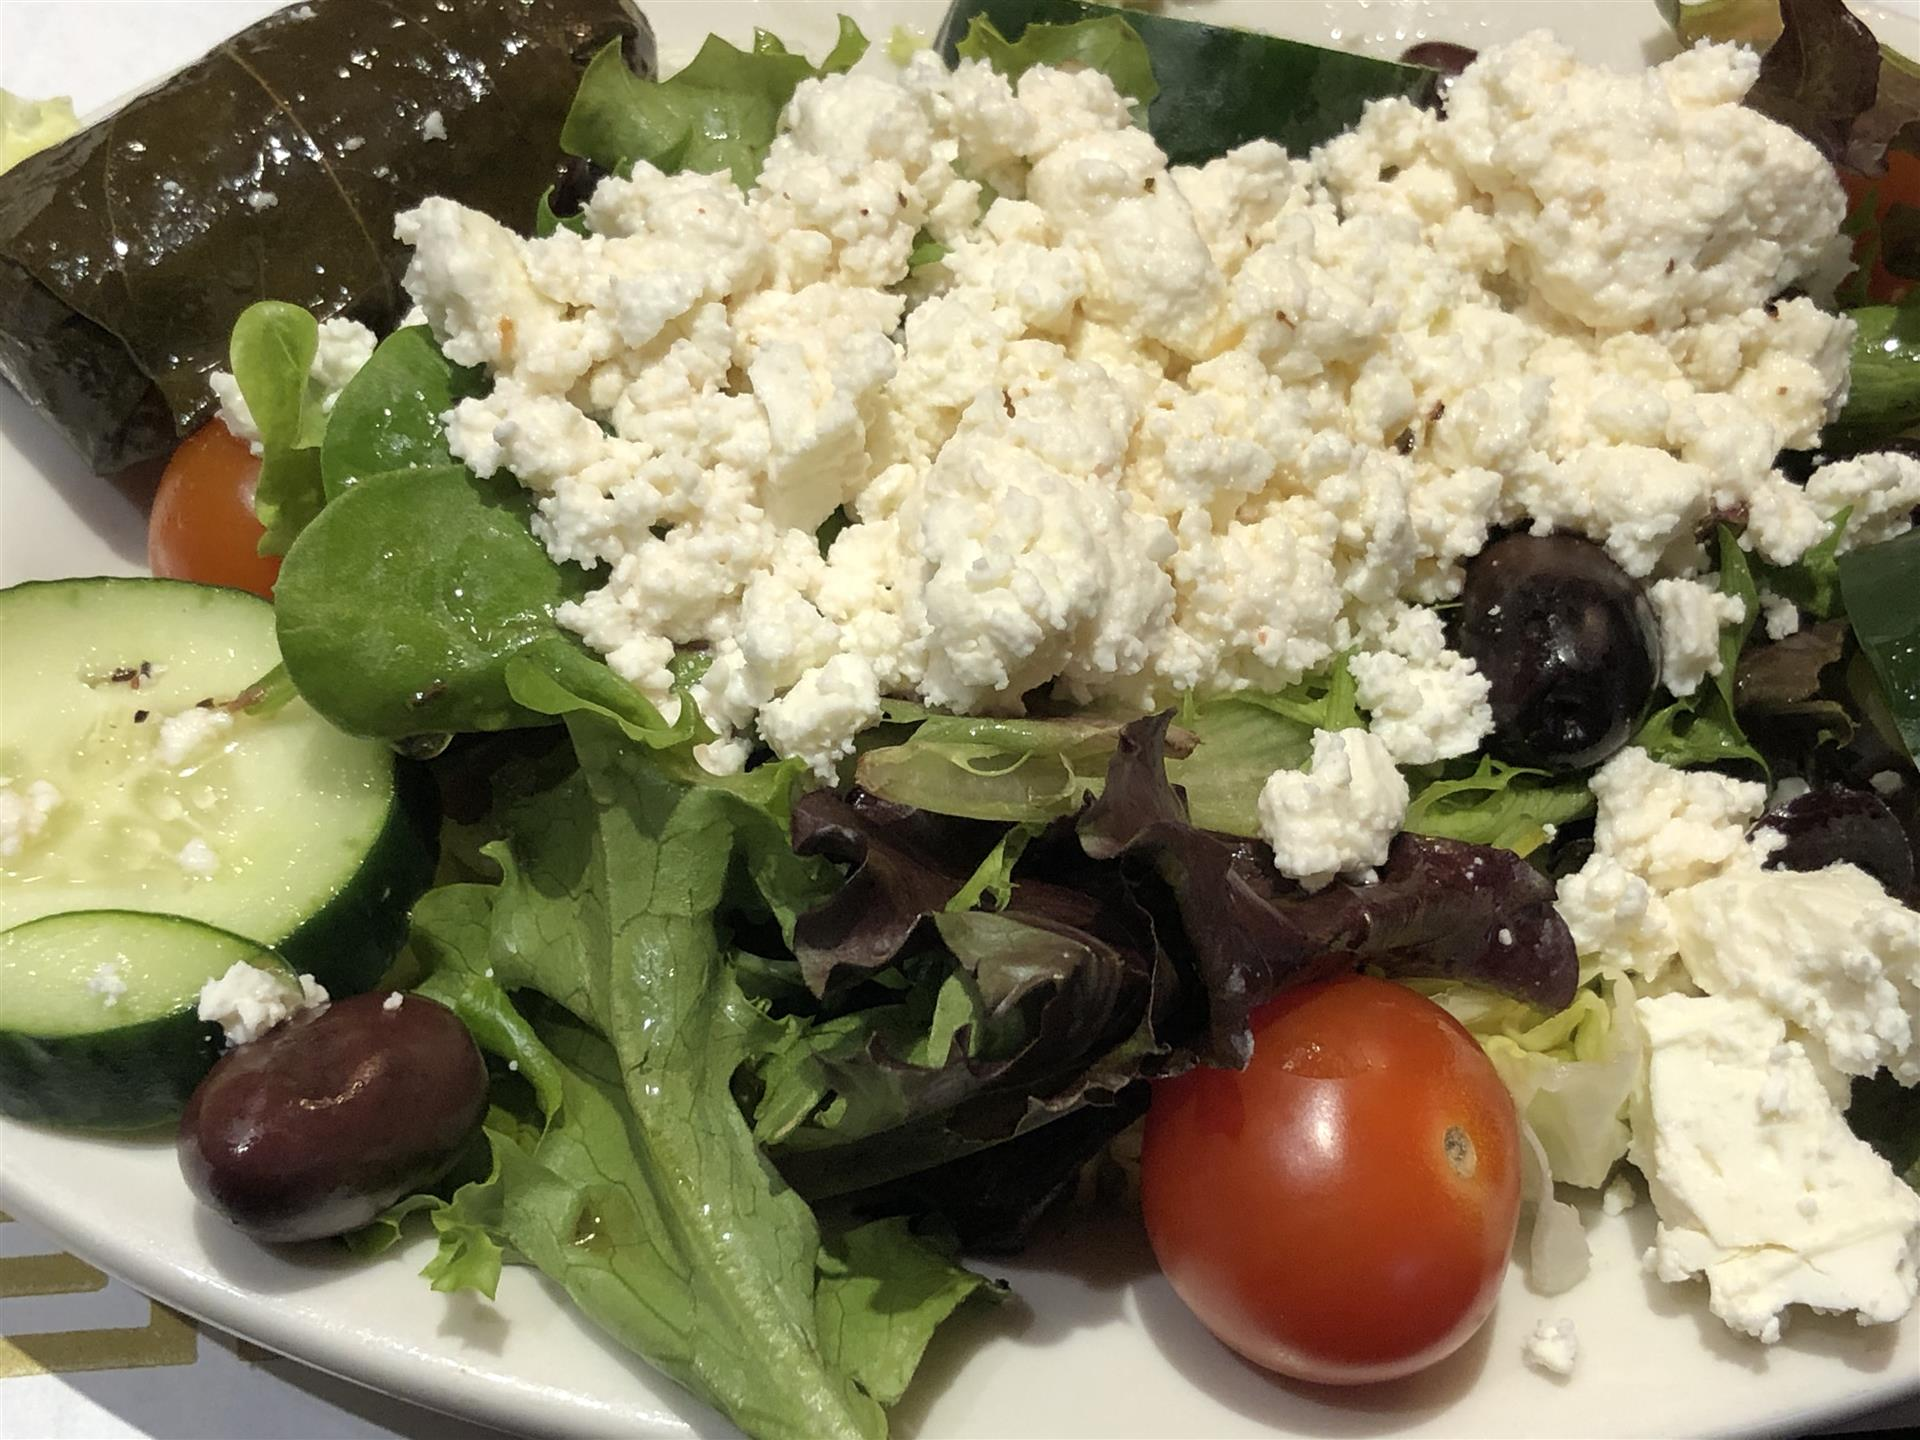 a Greek salad with olives, cucumbers, cherry tomatoes and feta cheese